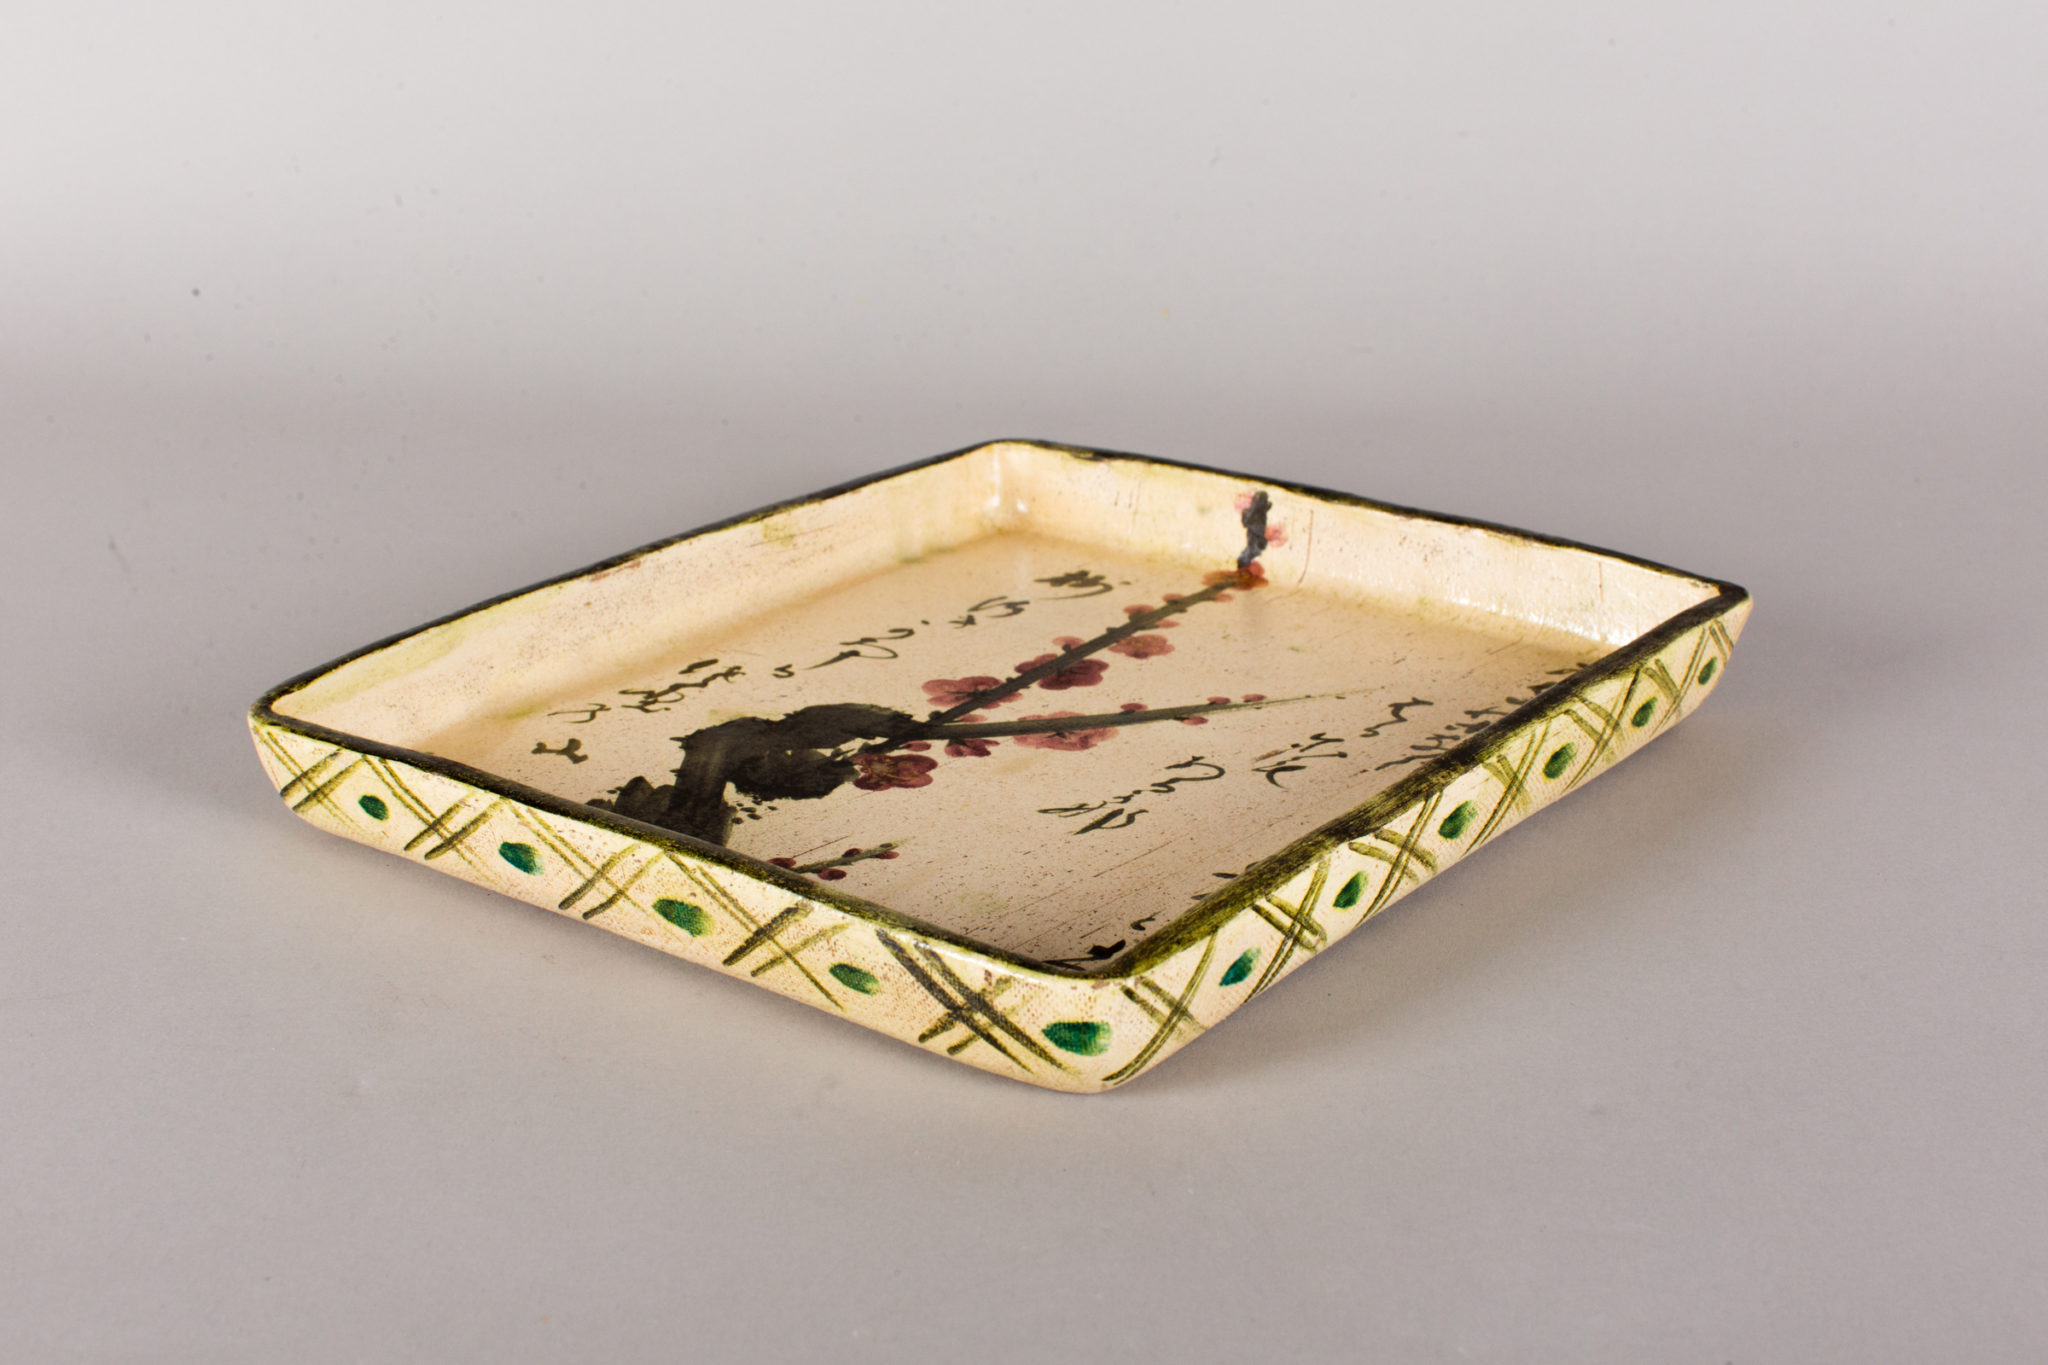 Antique Japanese Ceramic Tray with Plum and Calligraphy Design